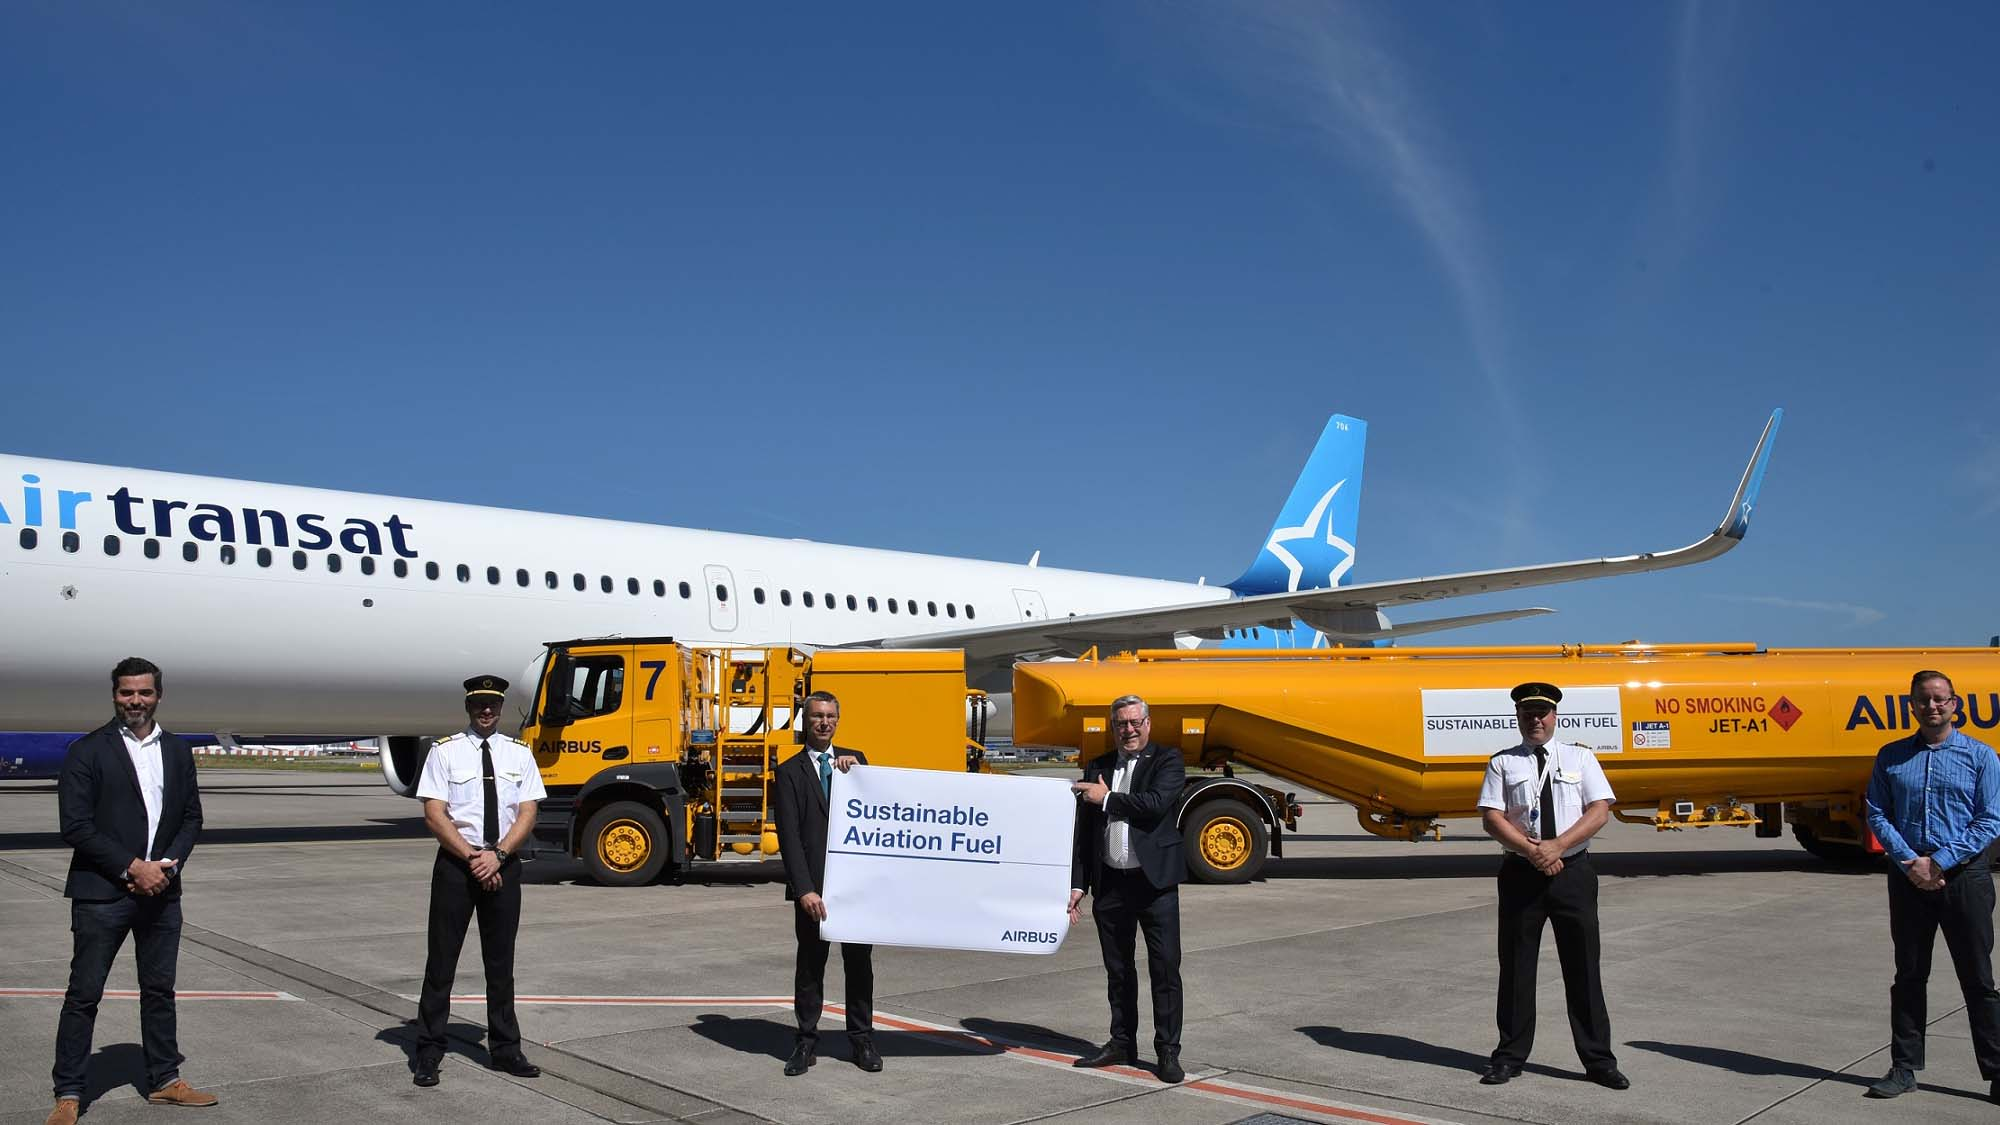 Air bp supplies sustainable aviation fuel for Airbus delivery ...